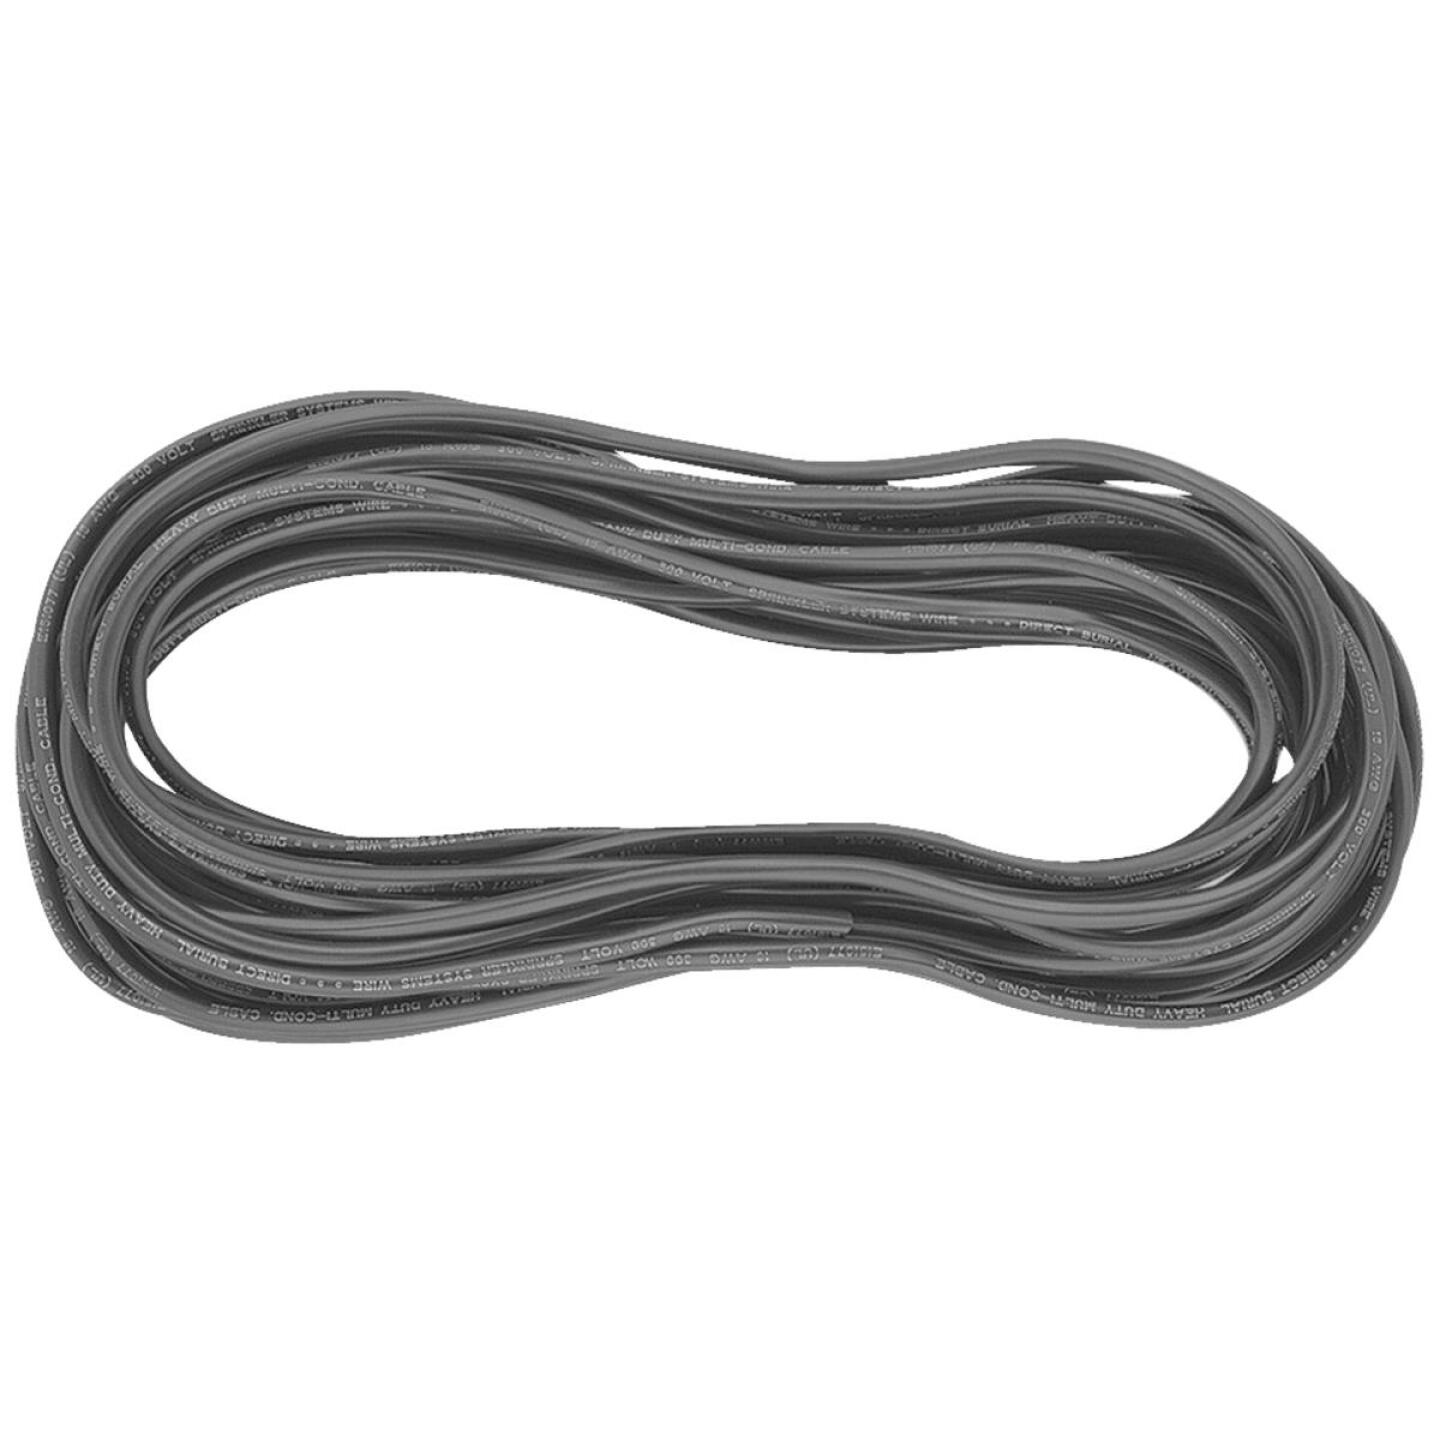 Orbit 50 Ft. 18 Ga. 5-Strand Sprinkler Wire Image 1